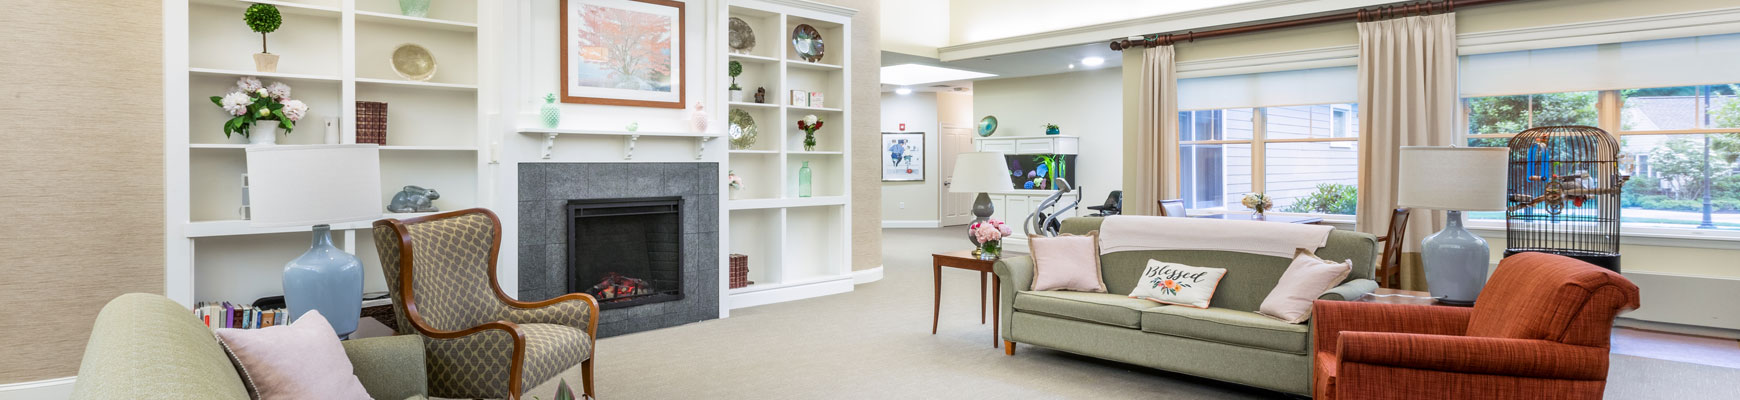 A bright and modern community room at Fox Hill Village senior living community in Massachusetts